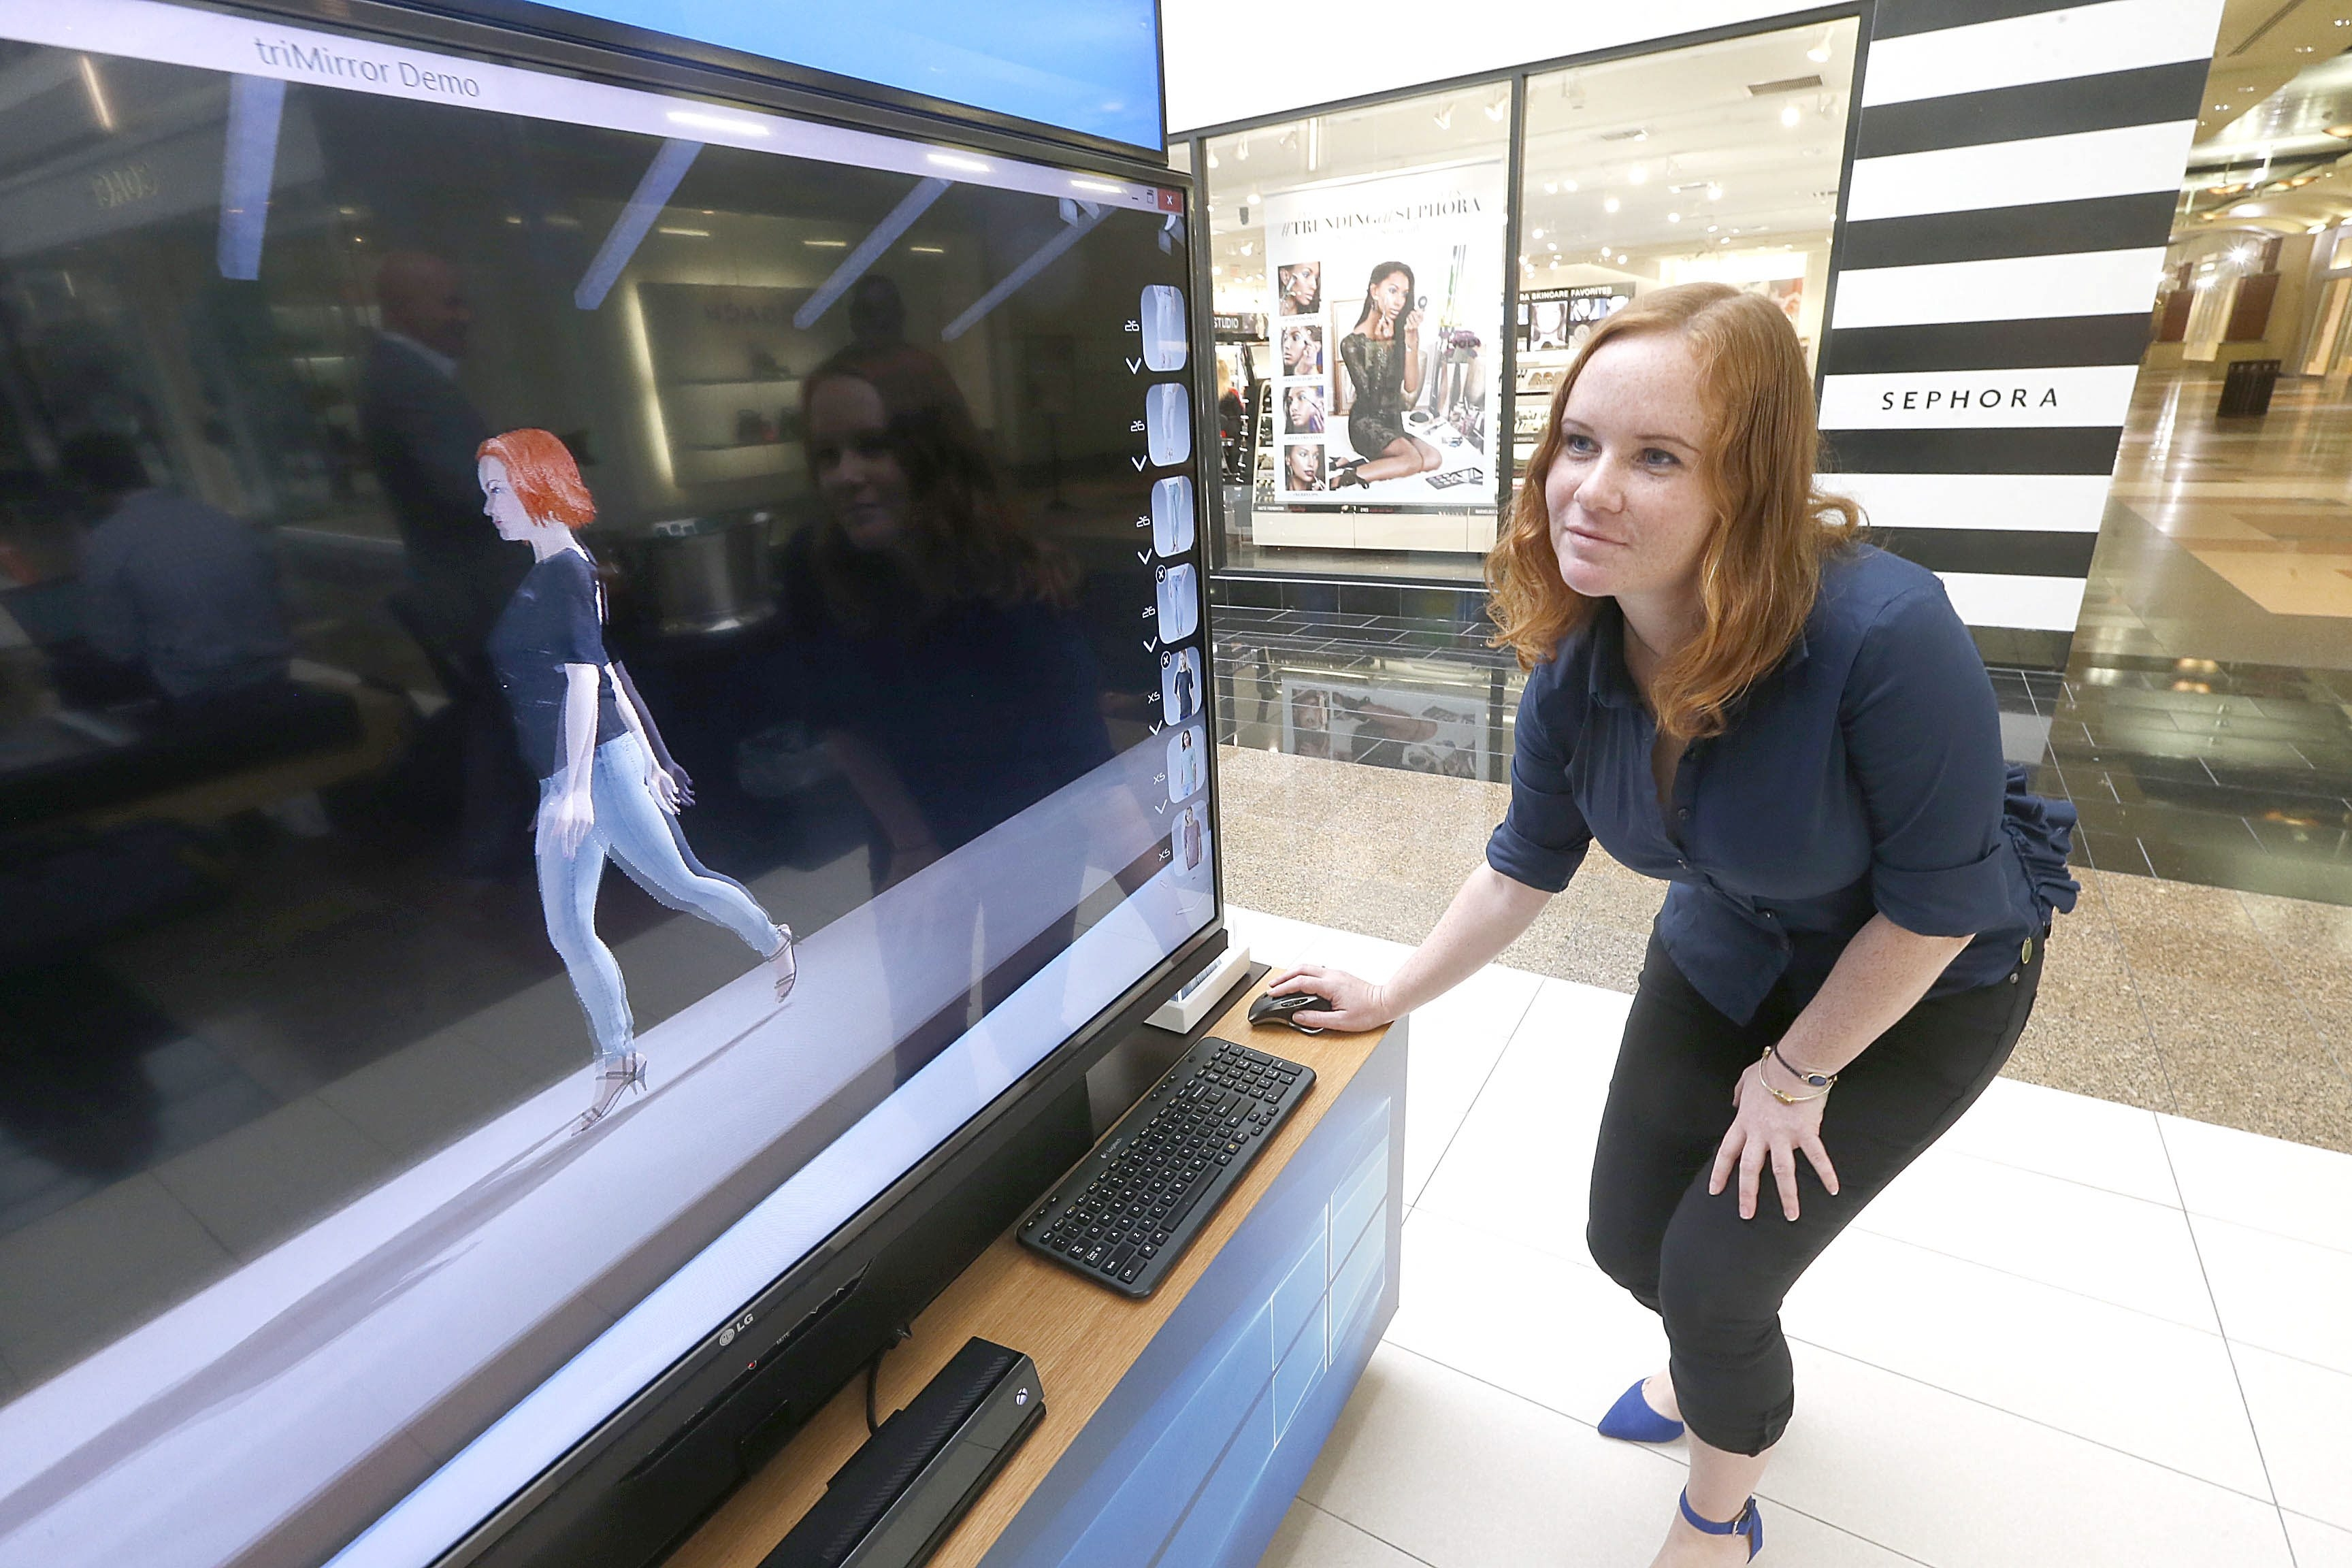 Jenny Tcharnaia, co-founder and CFO of triMirror, demonstrates use of the fashion-imaging software outside the Microsoft Store at the Walden Galleria on Thursday. triMirror was one of the winners of the 43North business plan competition.